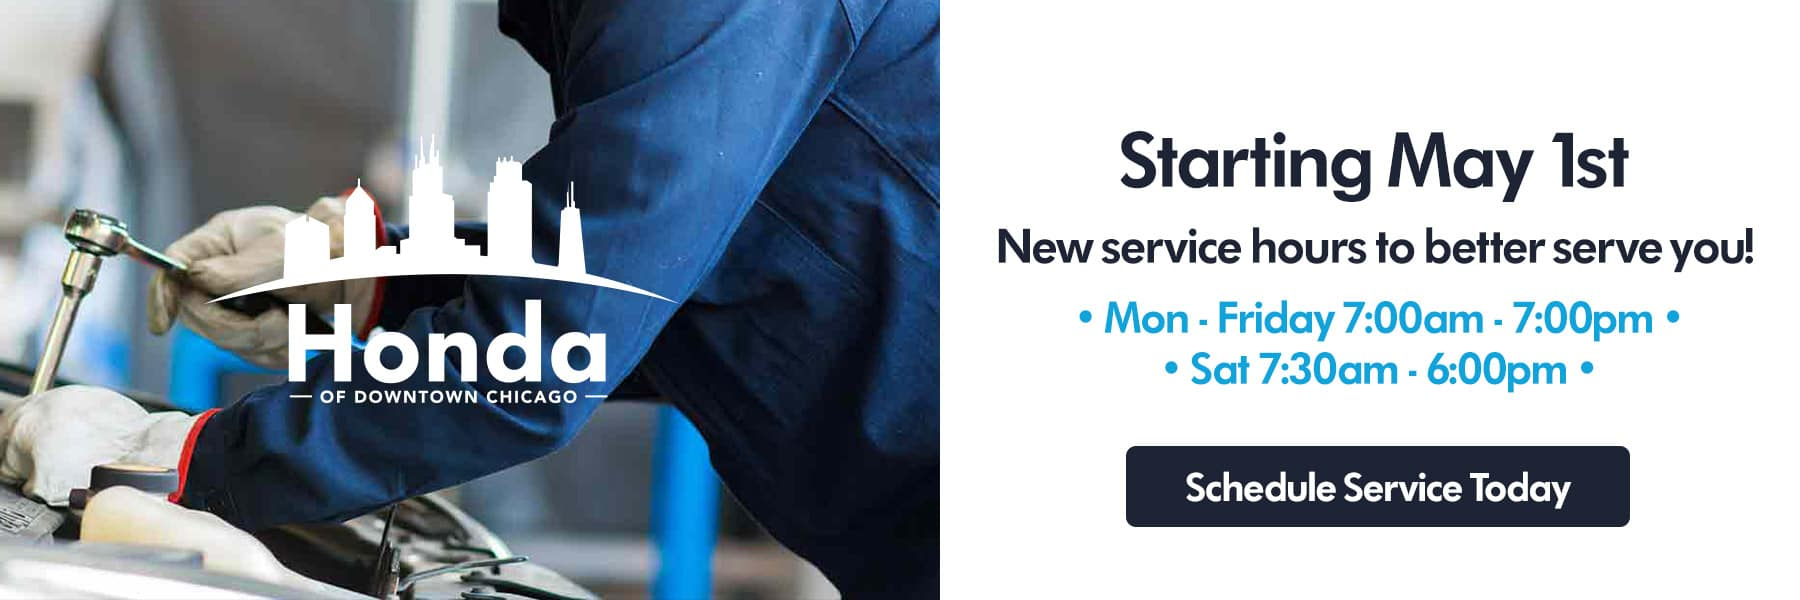 Starting May 1st - New Service Hours To Better Serve You! - Monday Through Friday 7 a m to 7 p m - Saturday 7 30 a m to 6 p m - Schedule Your Service Today